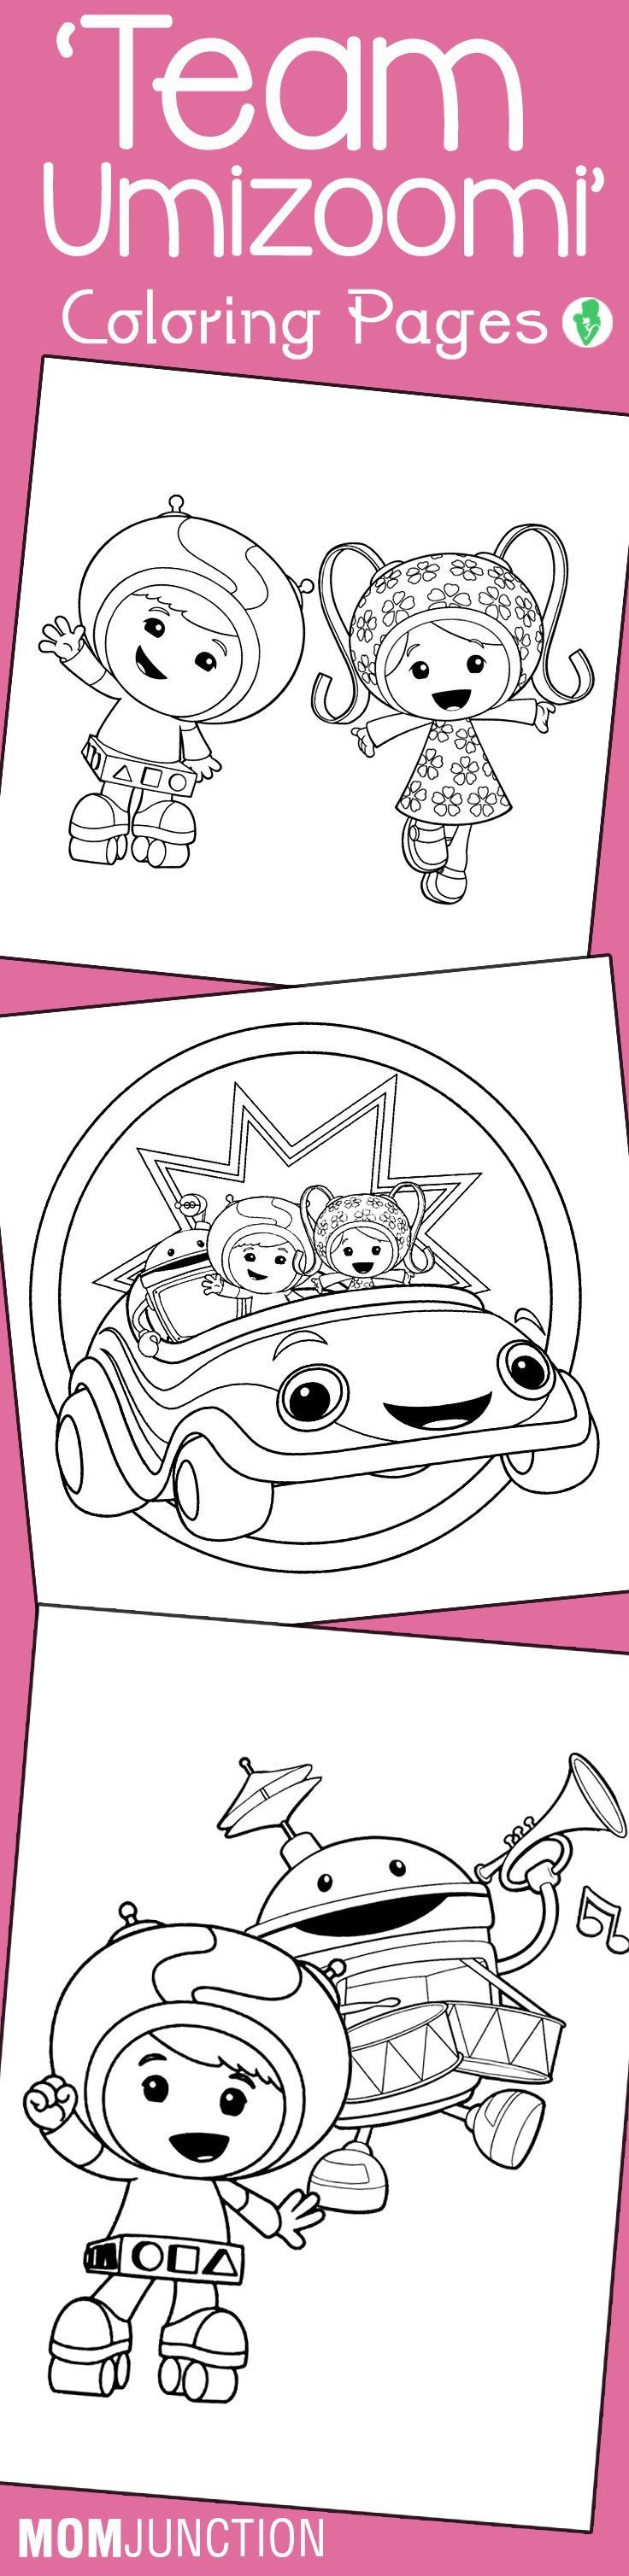 1031 best Coloring Pages images on Pinterest Coloring sheets